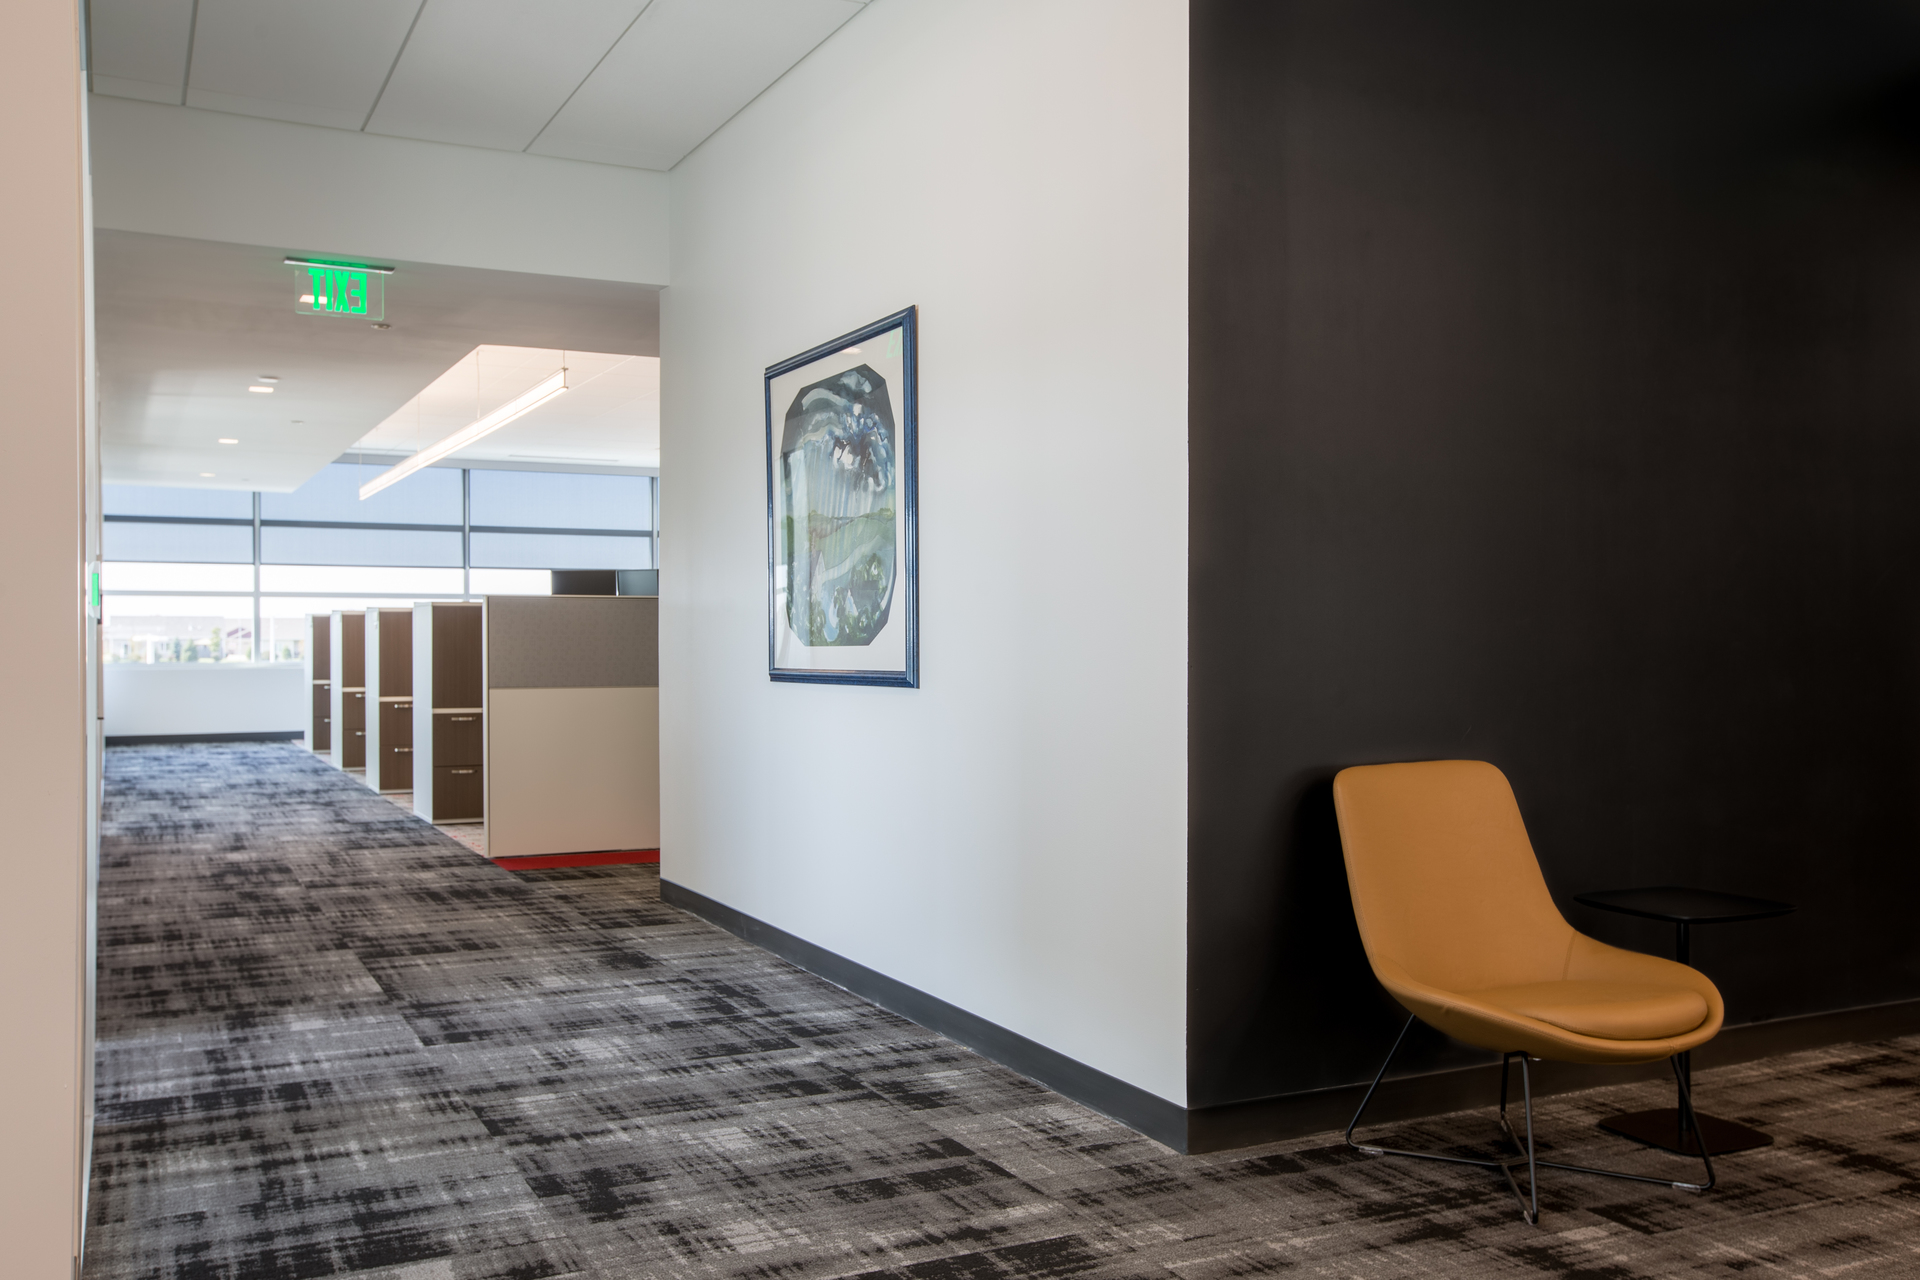 Spacious office hallways provide easy traffic flow between rooms and spaces at the IMT HQ in West Des Moines, Iowa. Photography by Alex Benge.